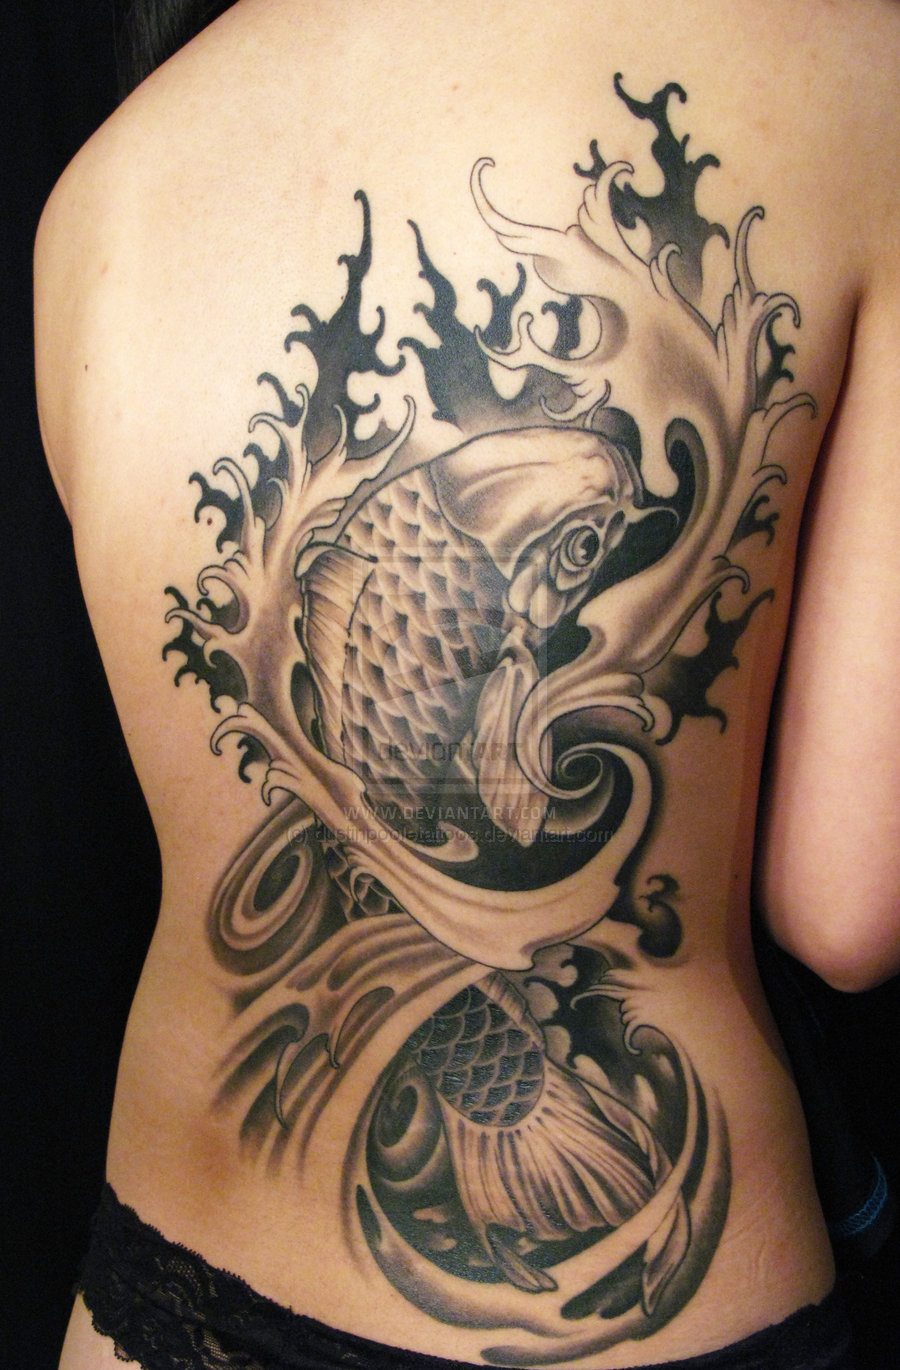 Lotus flower n koi fish tattoo on back of shoulder in 2017 real lotus flower n koi fish tattoo on back of shoulder in 2017 real photo pictures images and sketches tattoo collections izmirmasajfo Images